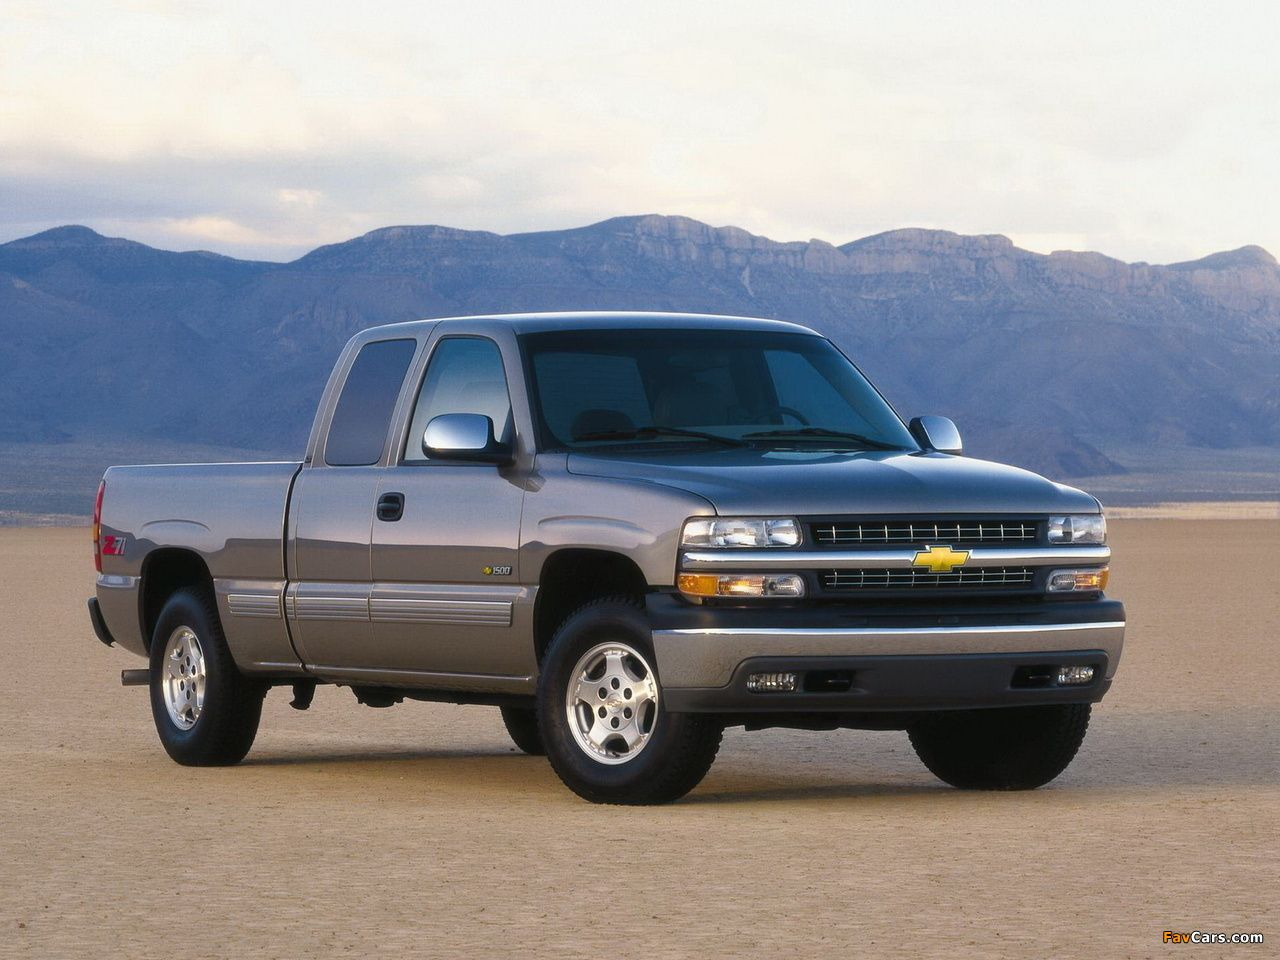 Chevrolet Silverado Ltz Z Iphone Wallpapers Hd Chevy Silverado